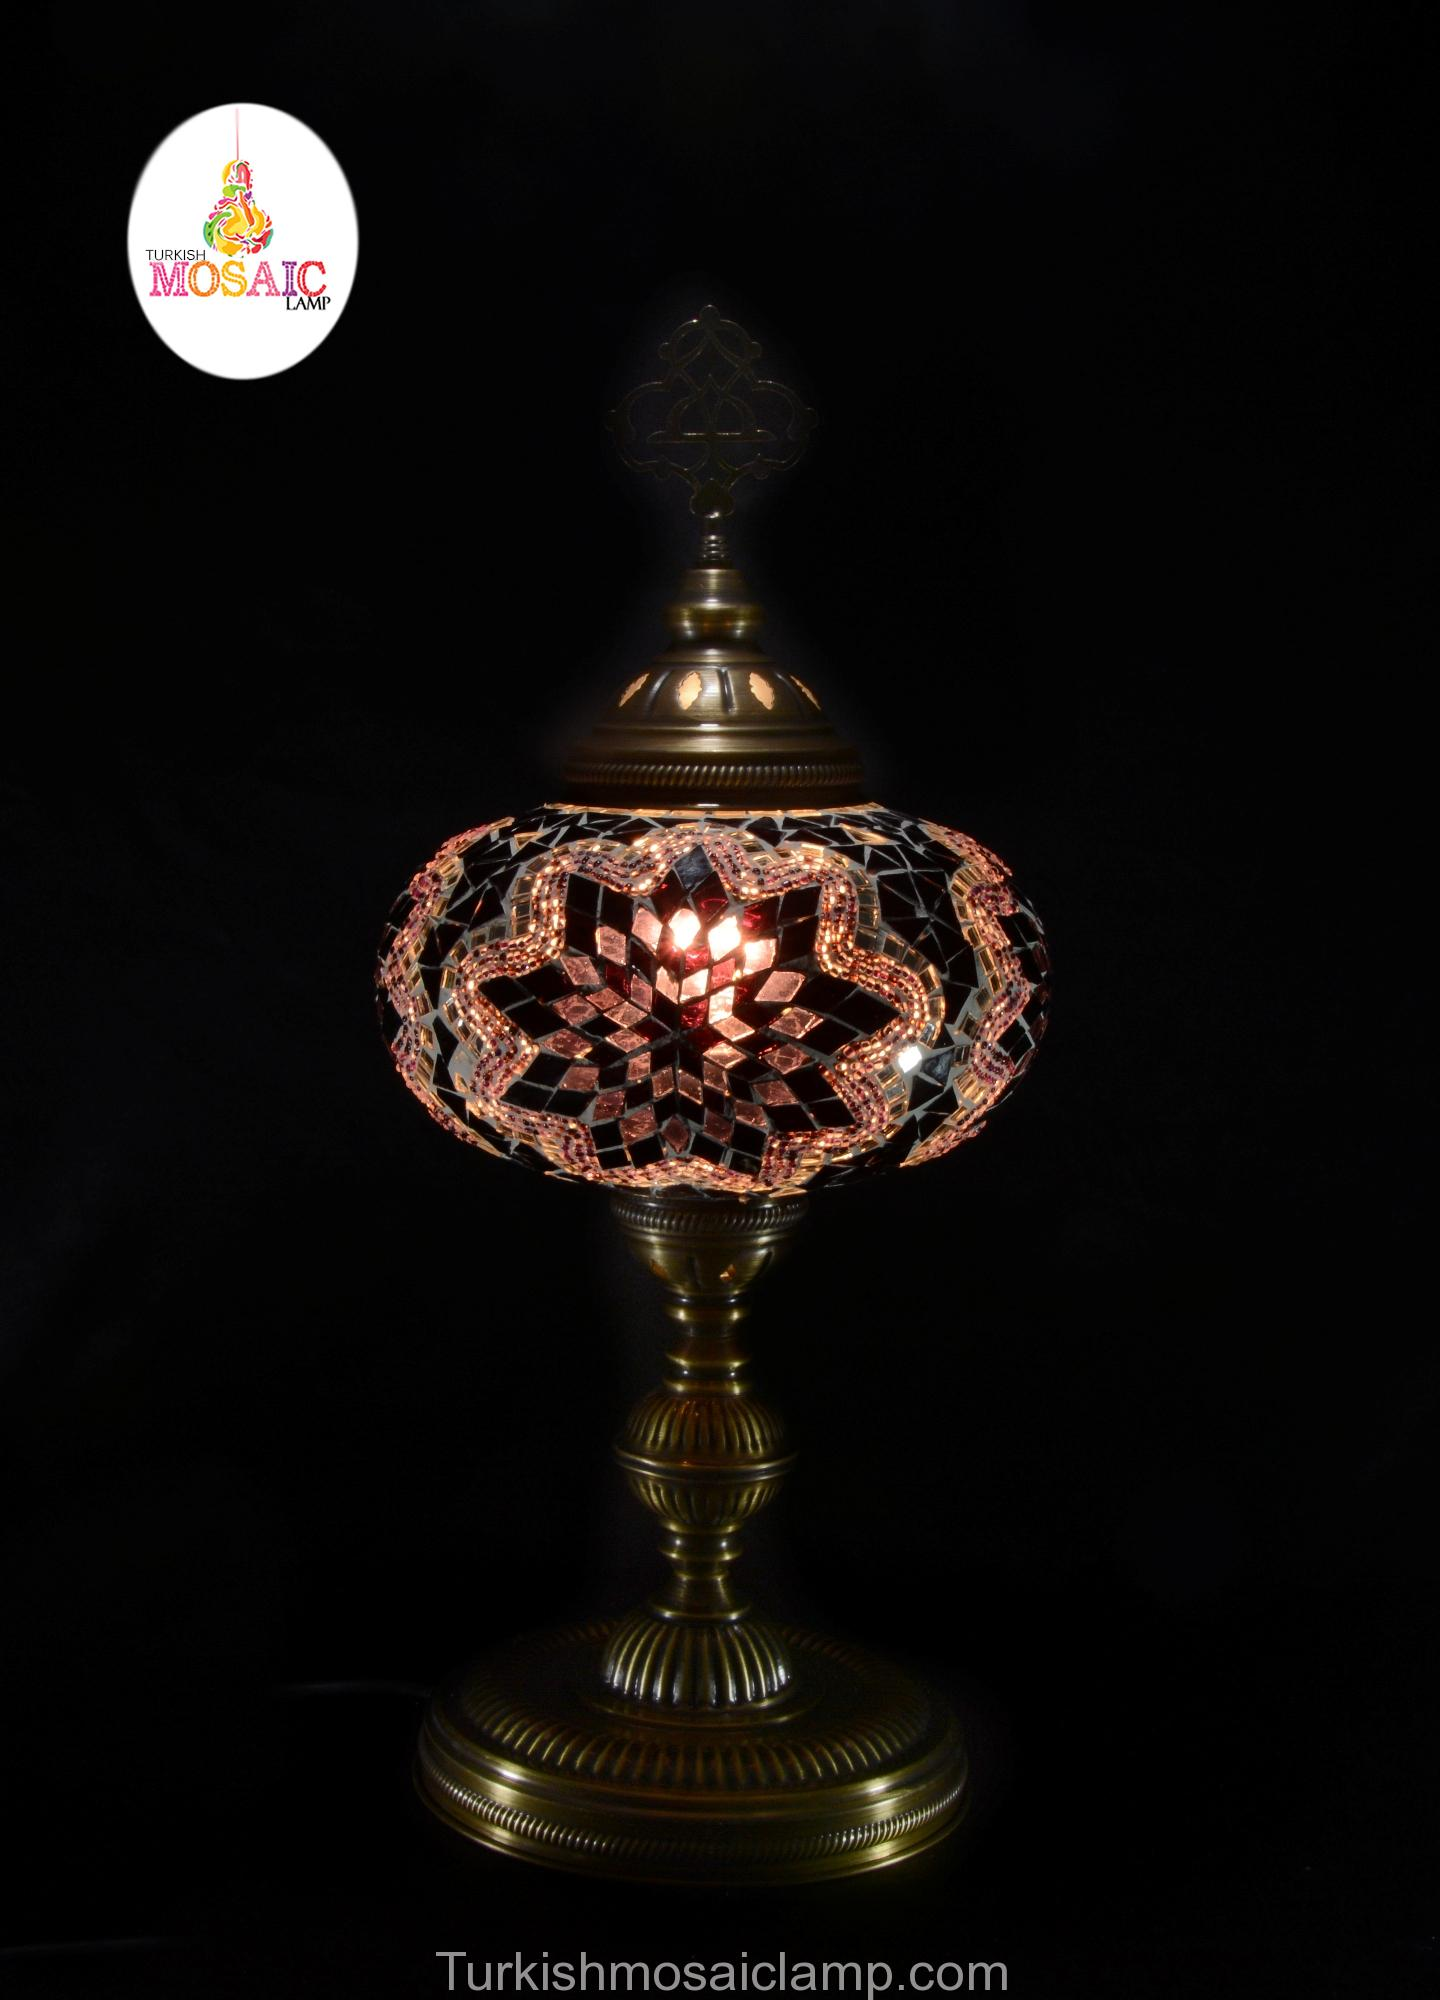 Table mosaic lamp